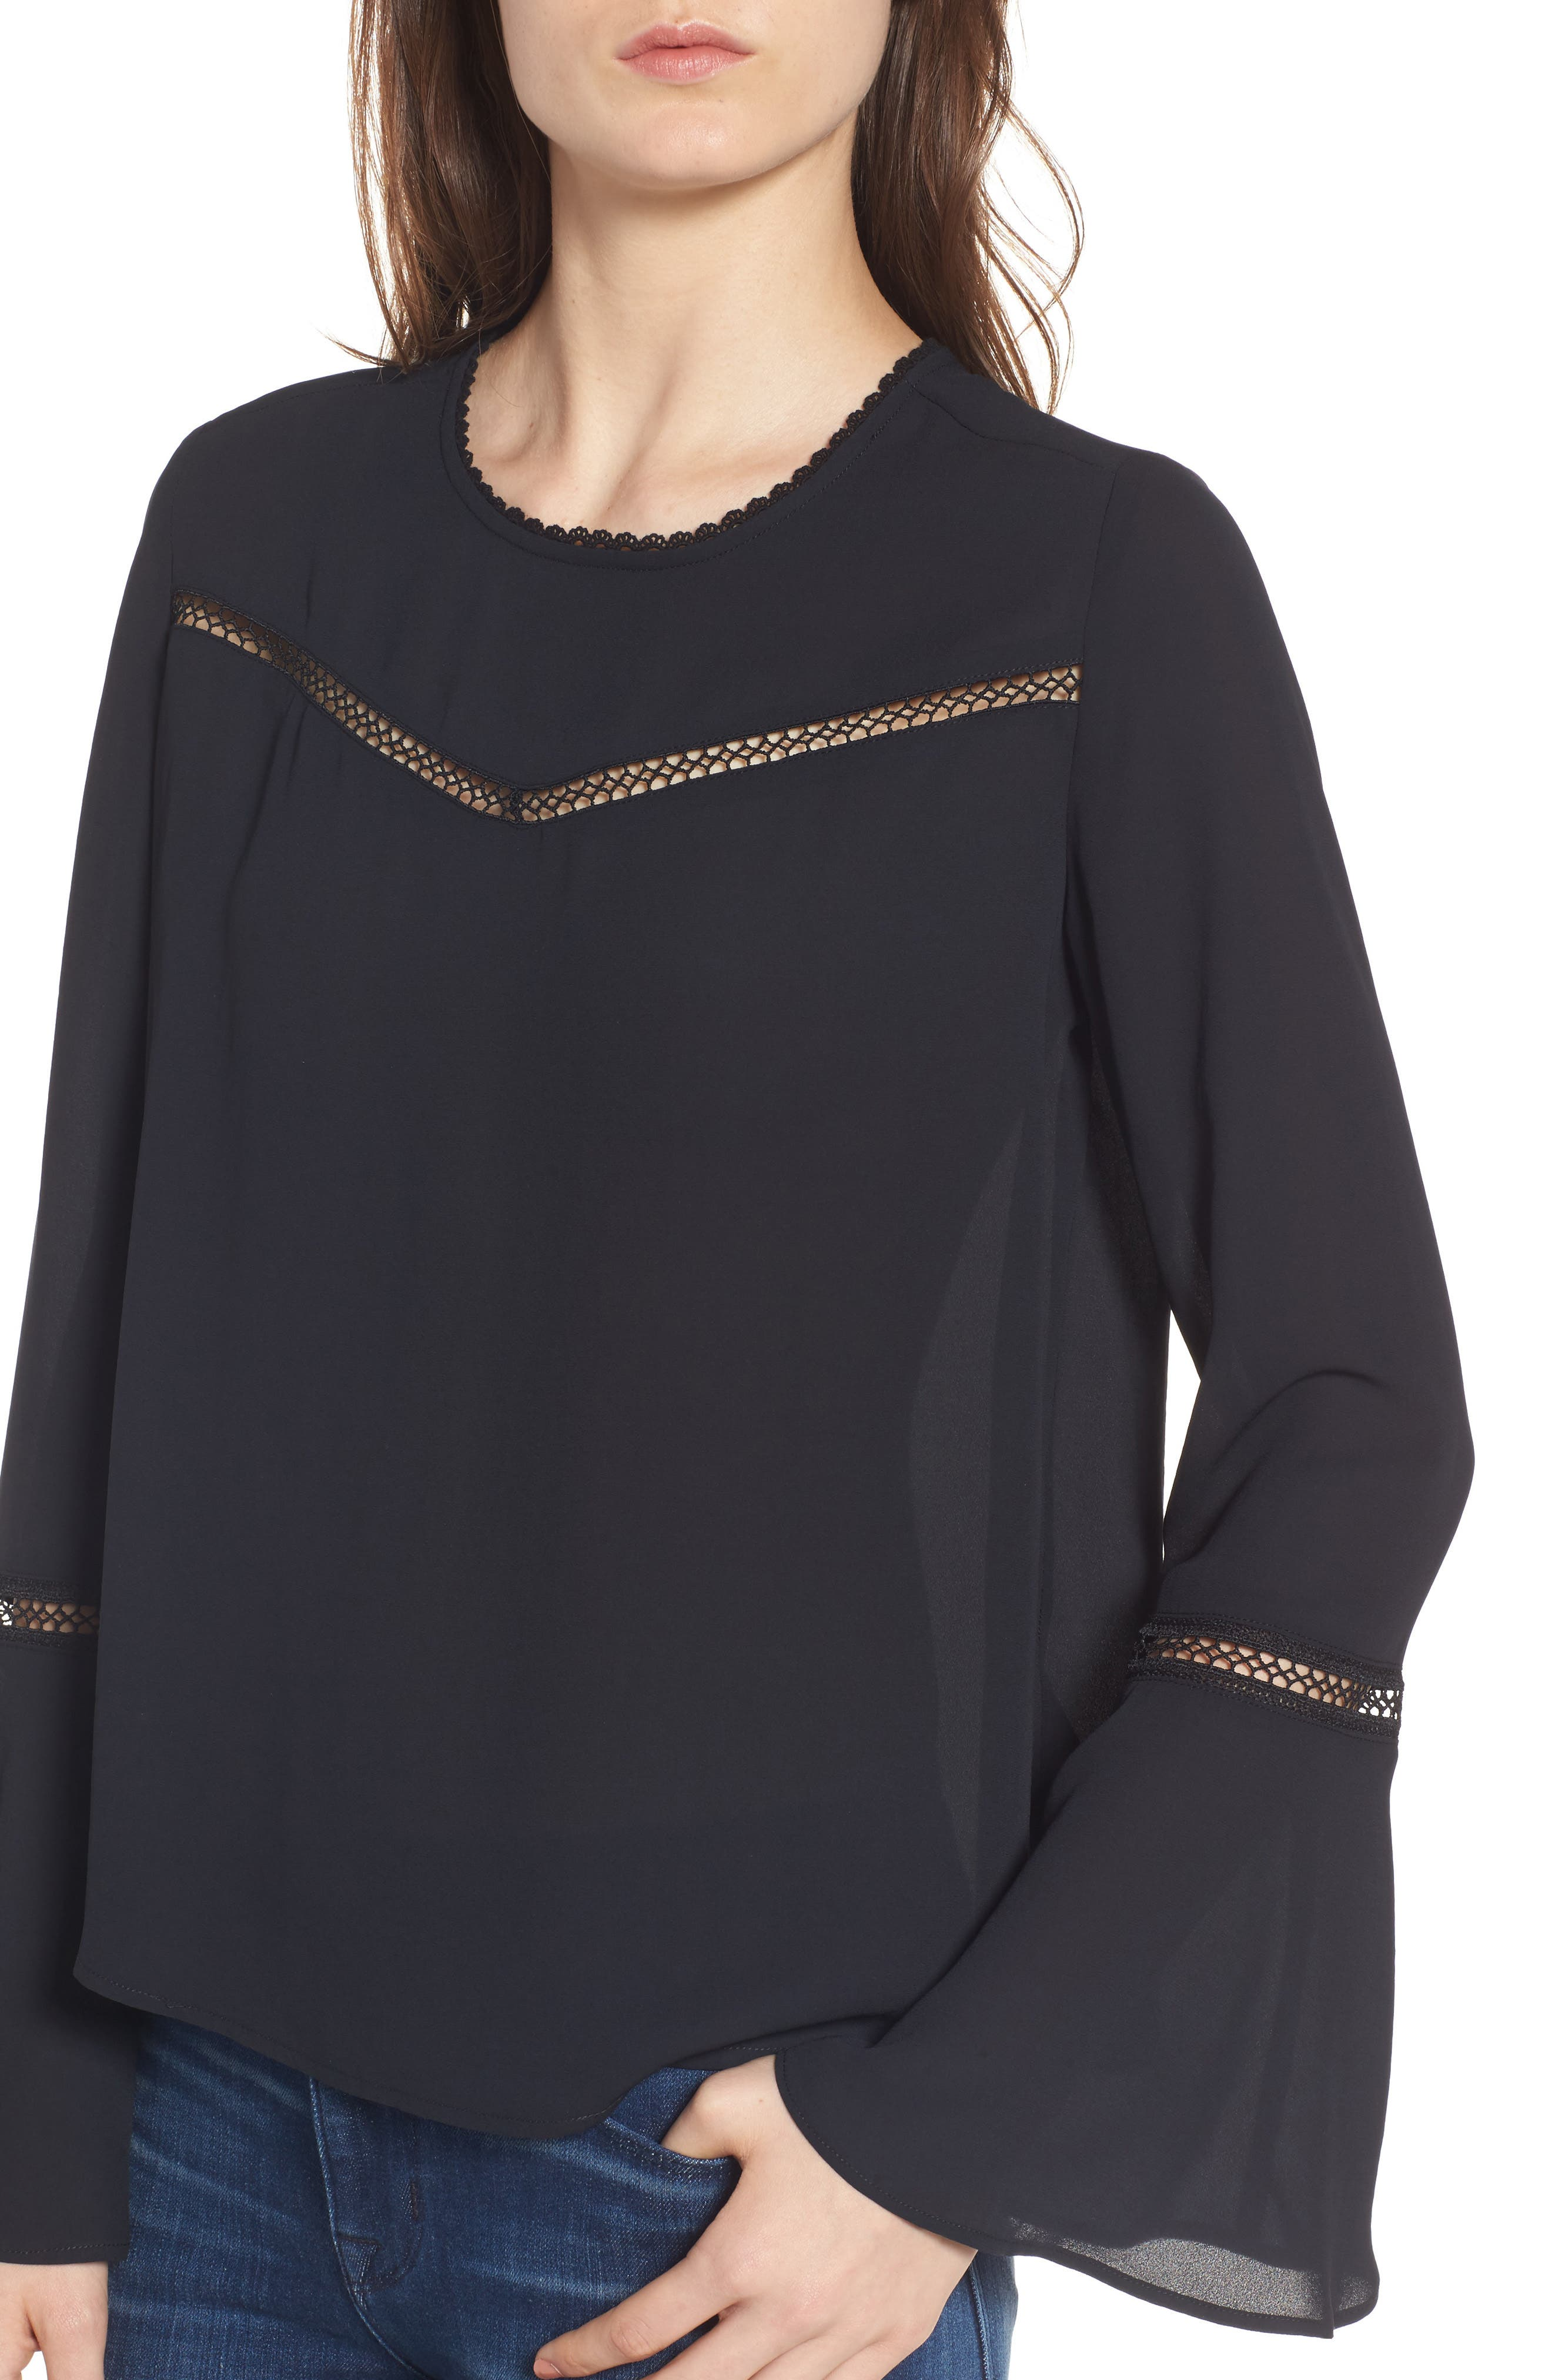 Chava Bell Sleeve Top,                             Alternate thumbnail 4, color,                             001